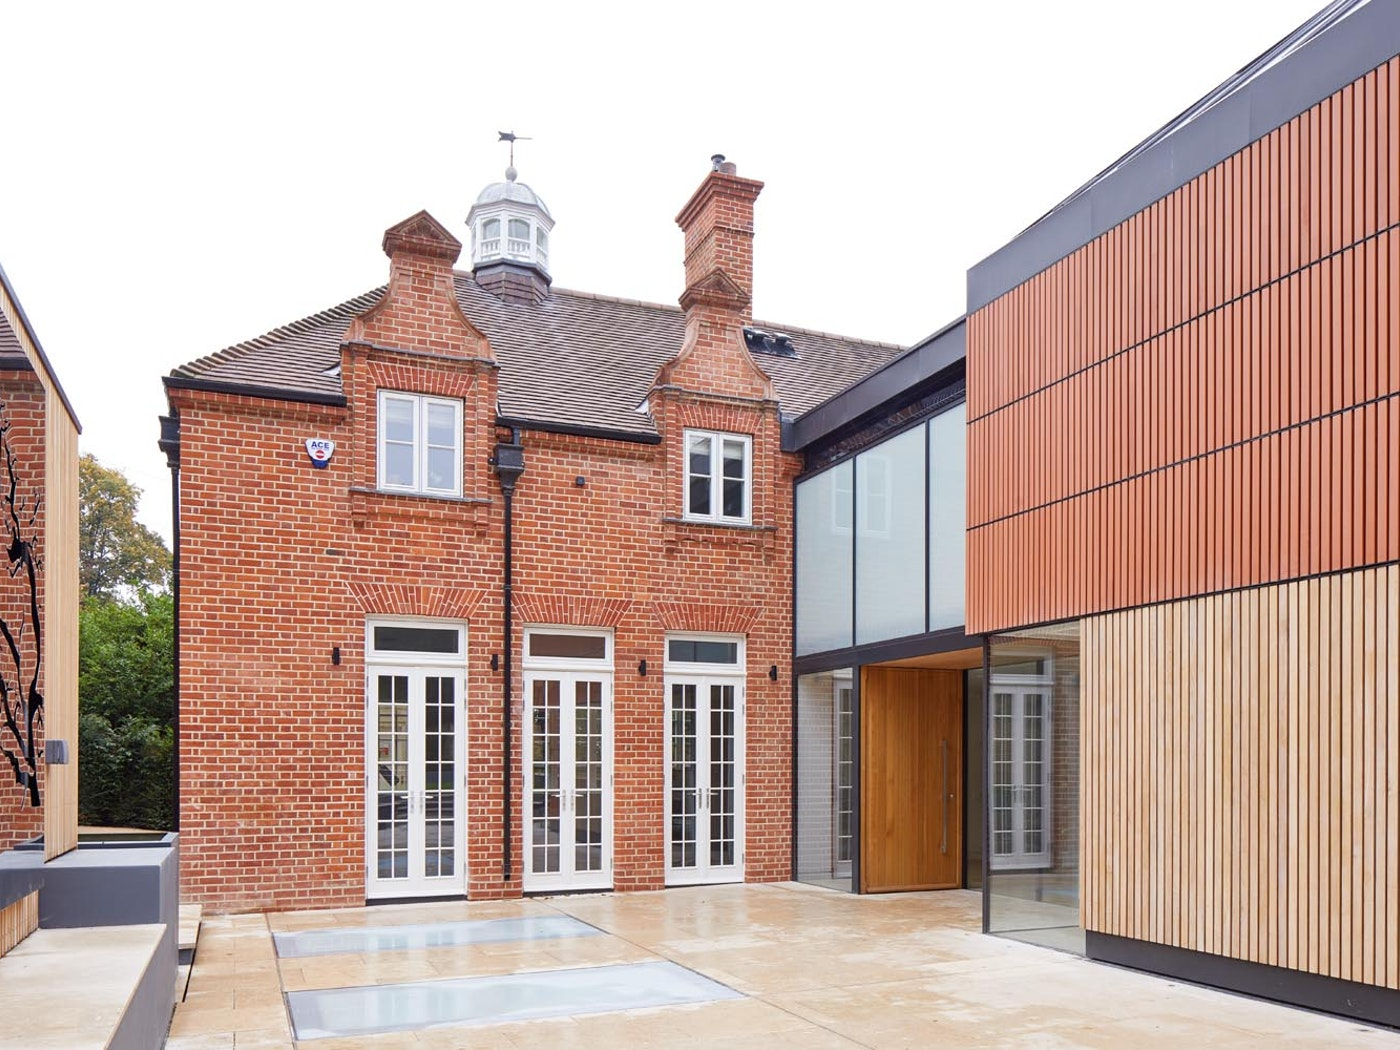 The warmth of the iroko front door works beautifully with the red brick and white windows of this house